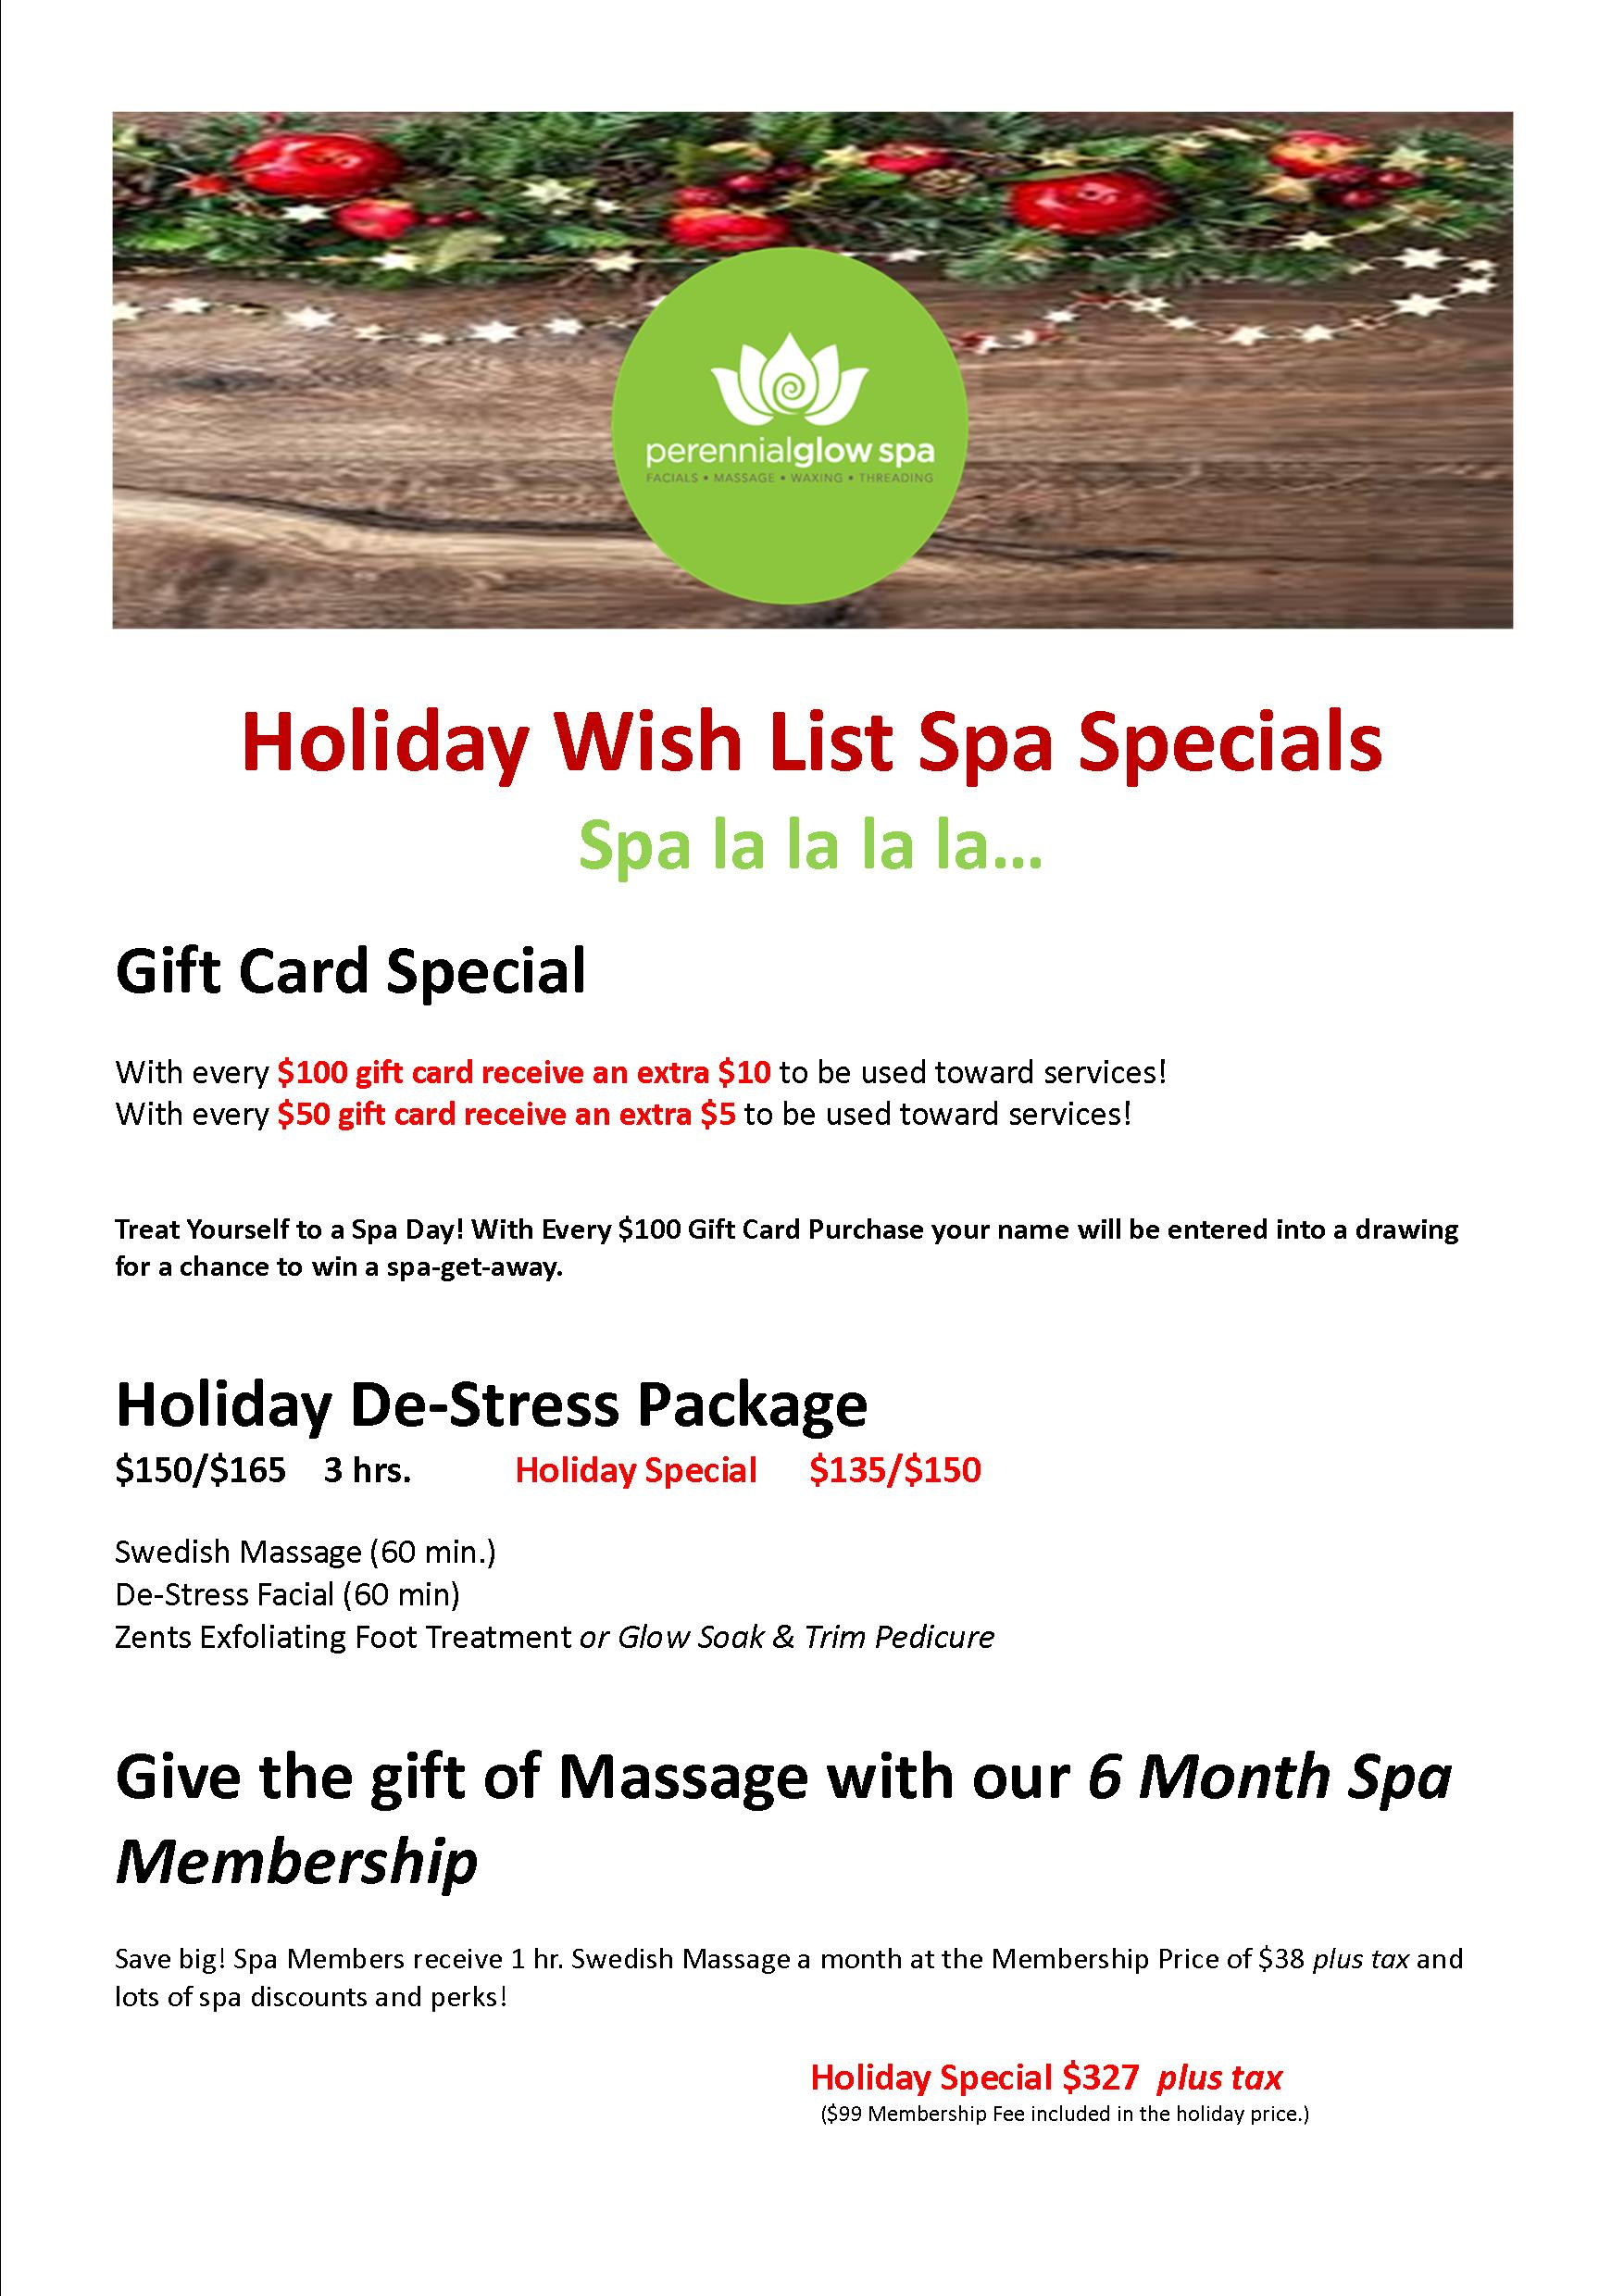 Christmas Gift Card Specials | PerennialGlow Spa